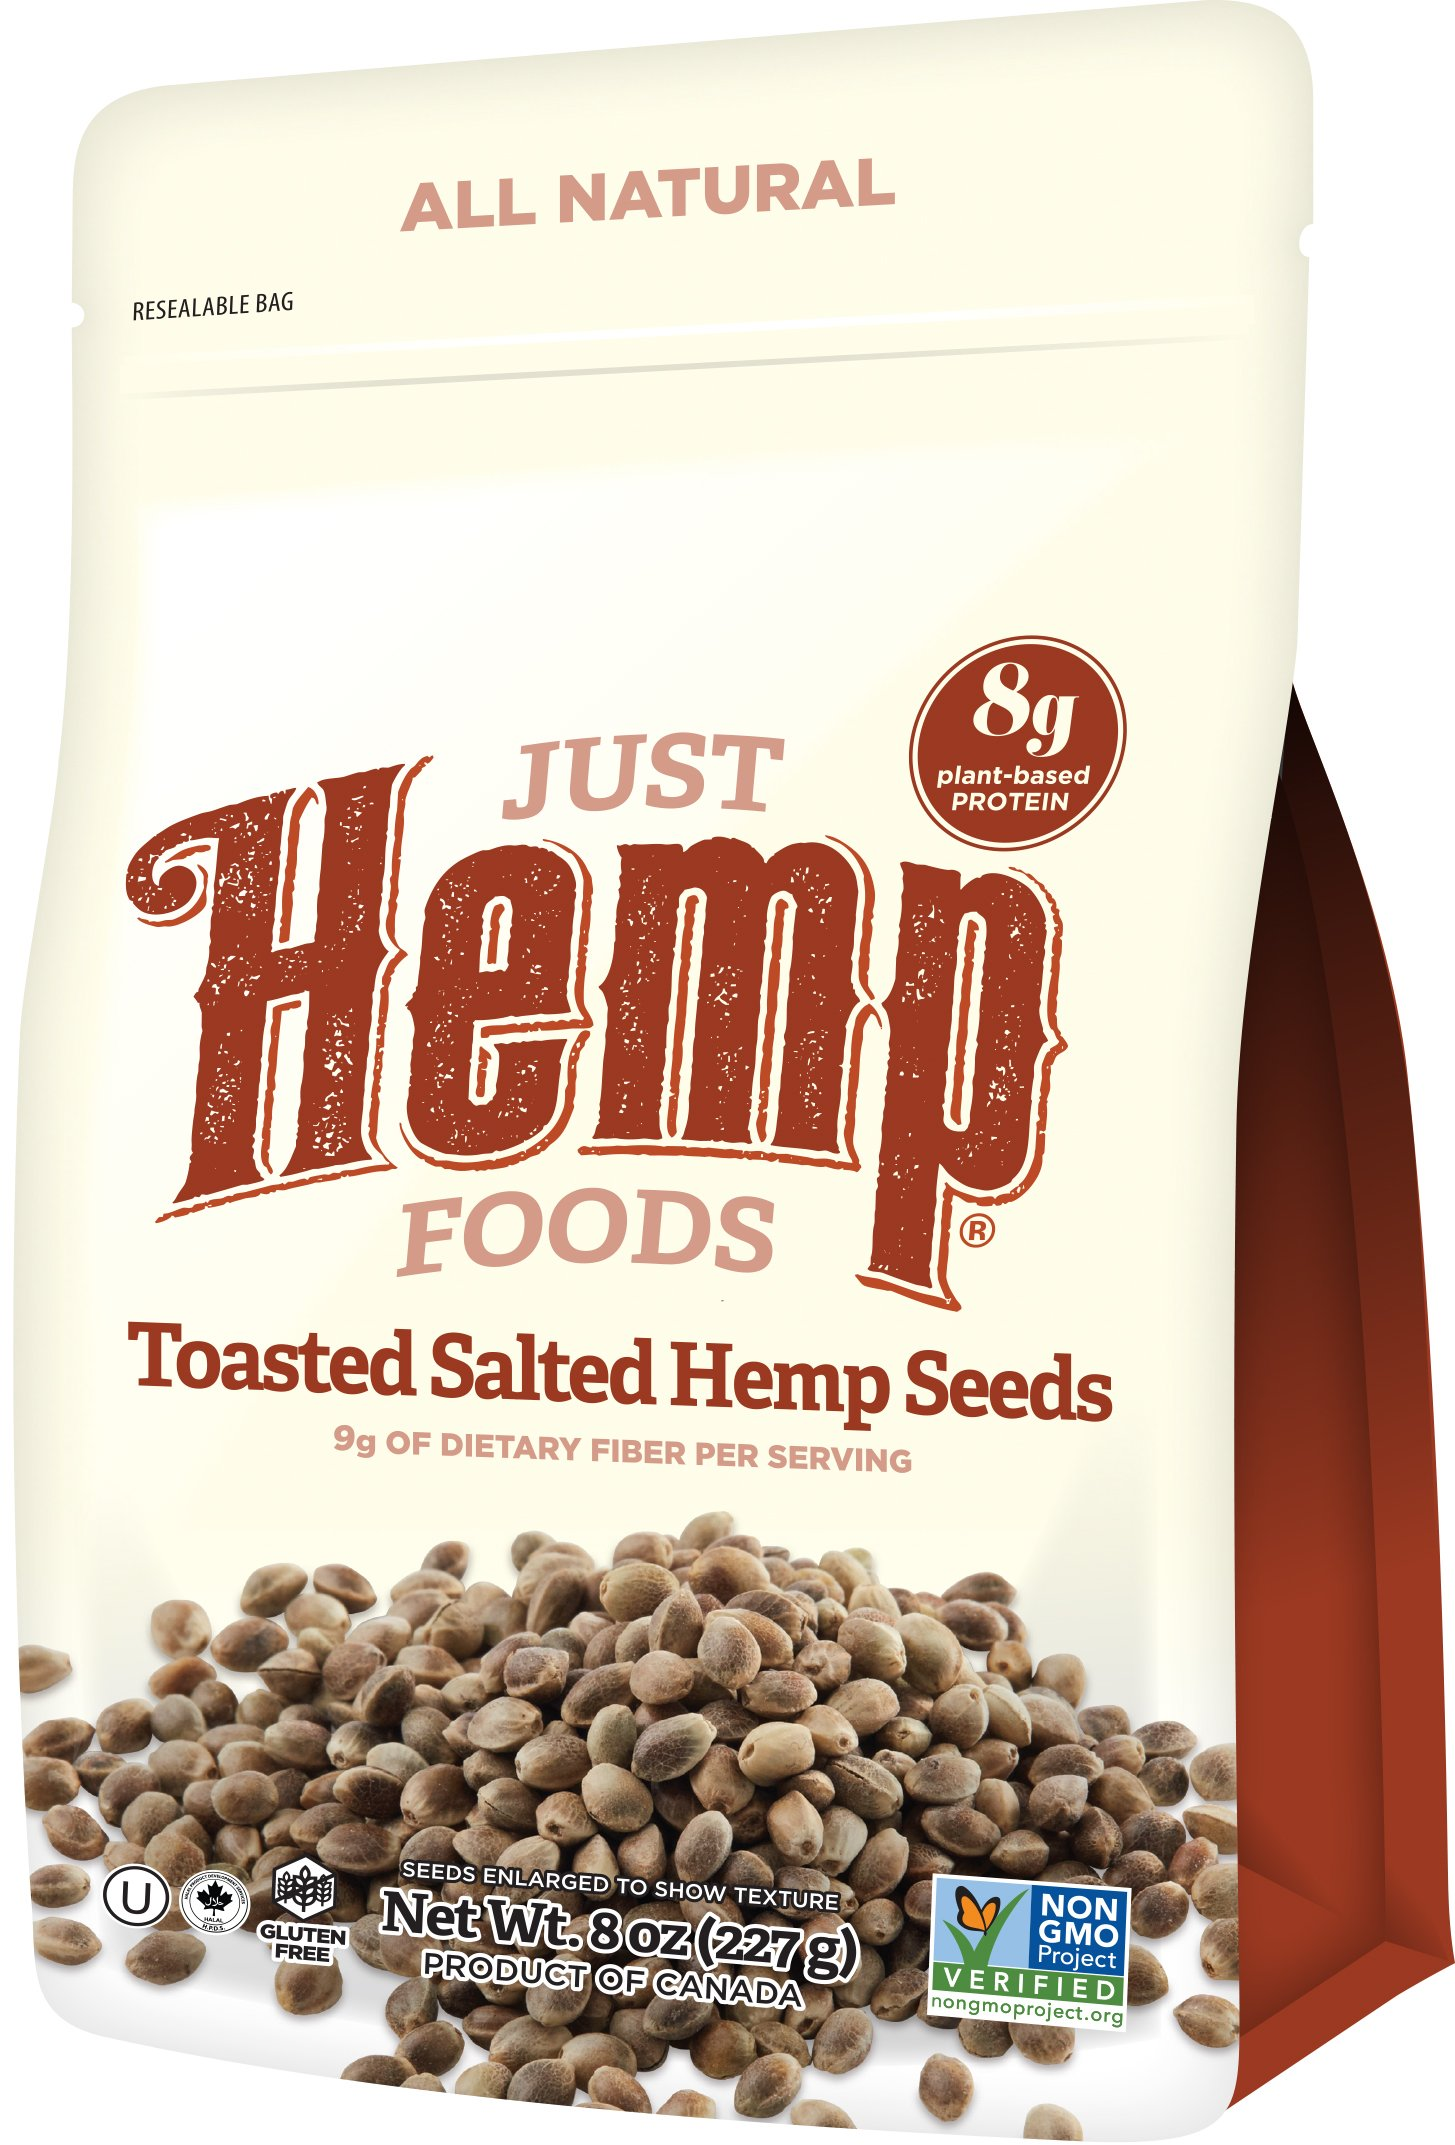 Just Hemp Foods Toasted Salted Hemp Seeds Snack, 8oz; with 9g of Fiber and 8g of Protein & Omegas per Serving